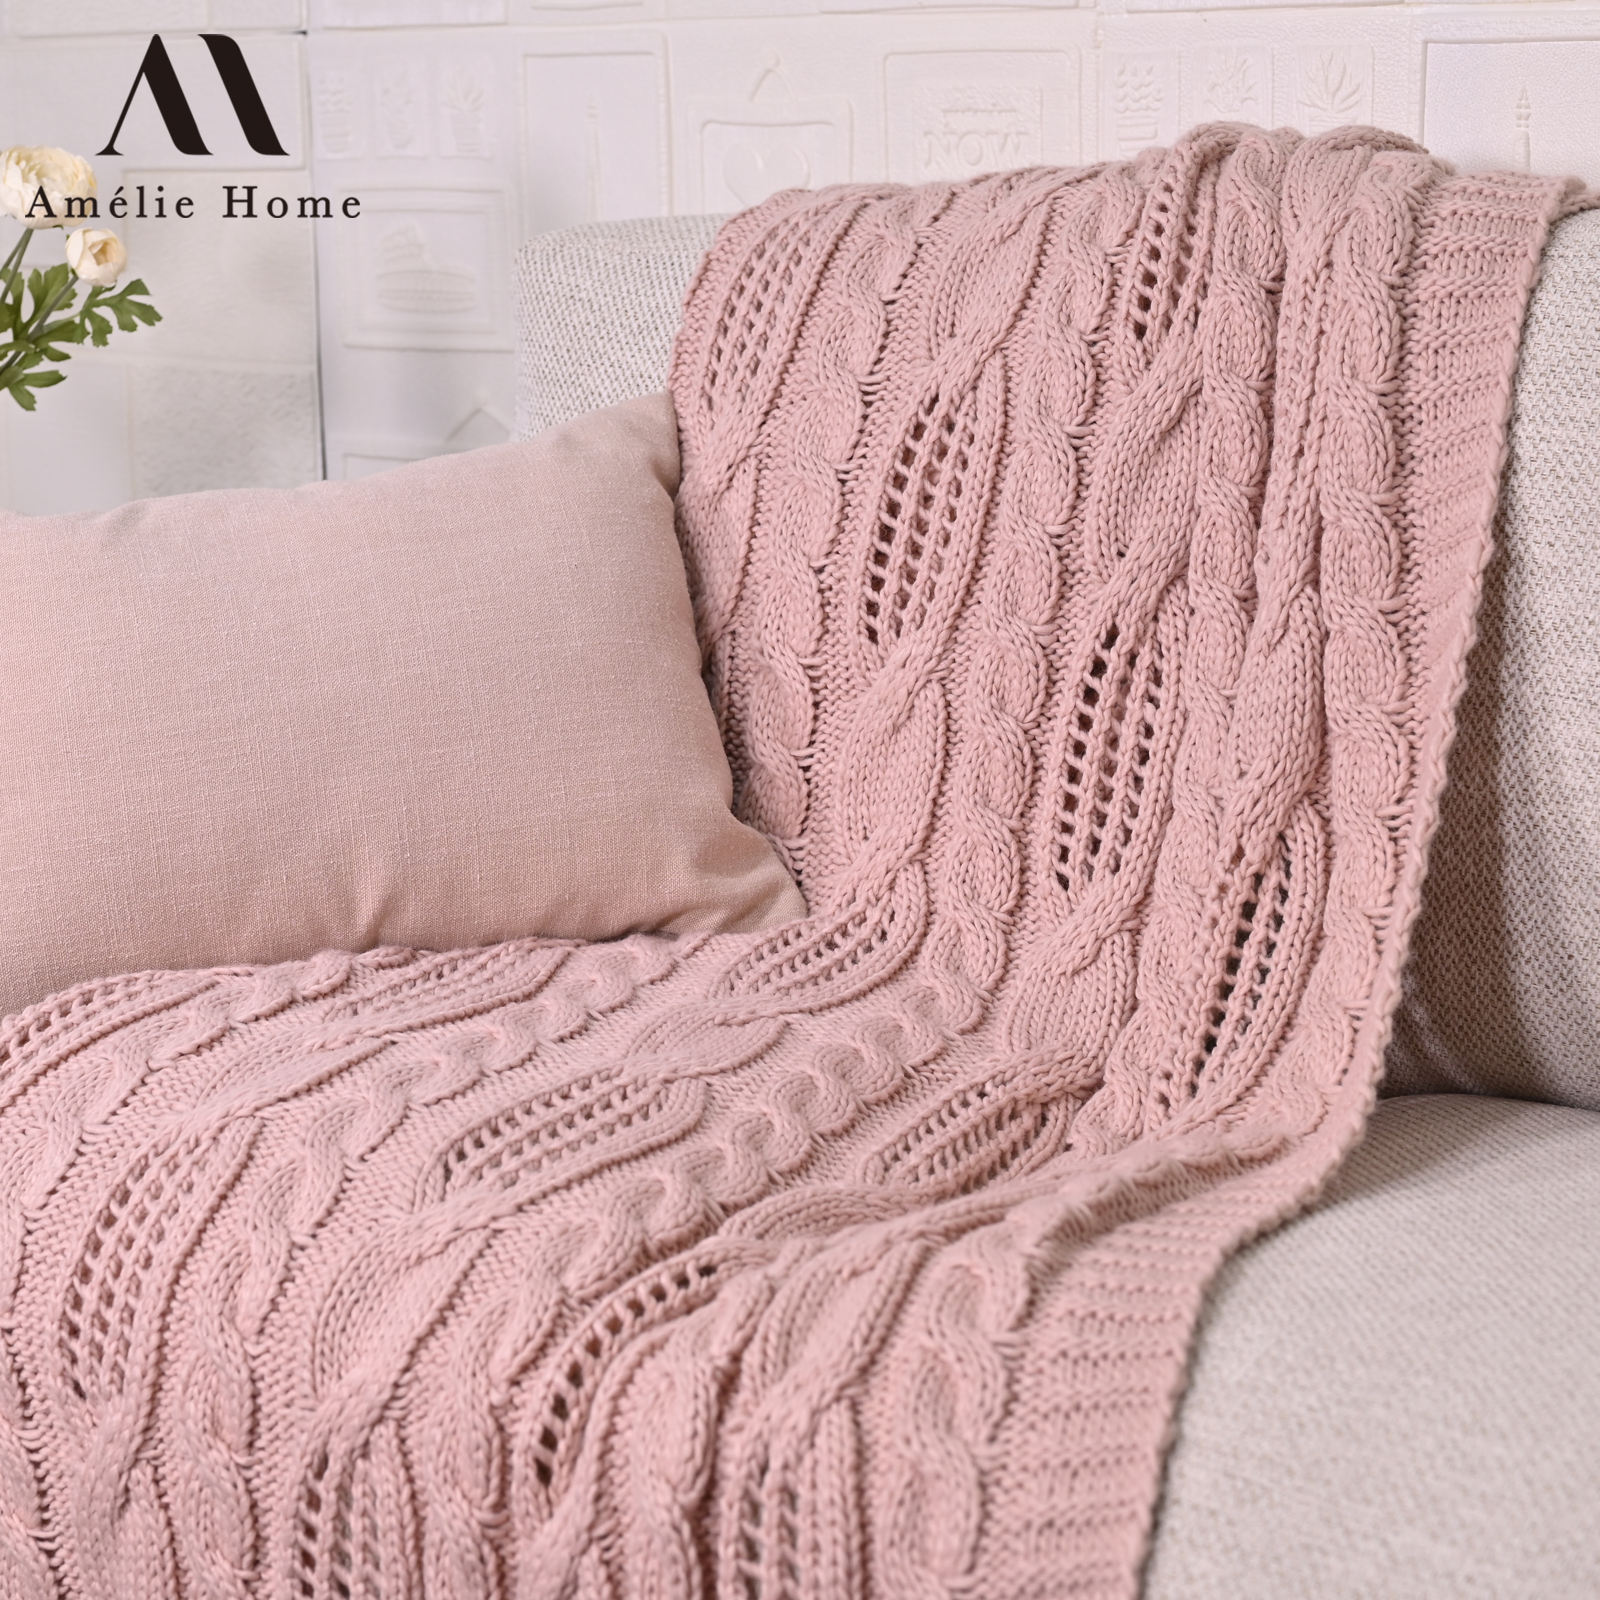 Amelie Home Custom Acrylic Blanket Amazon Hot Sales Pink Blanket Throw Blankets For Sofa